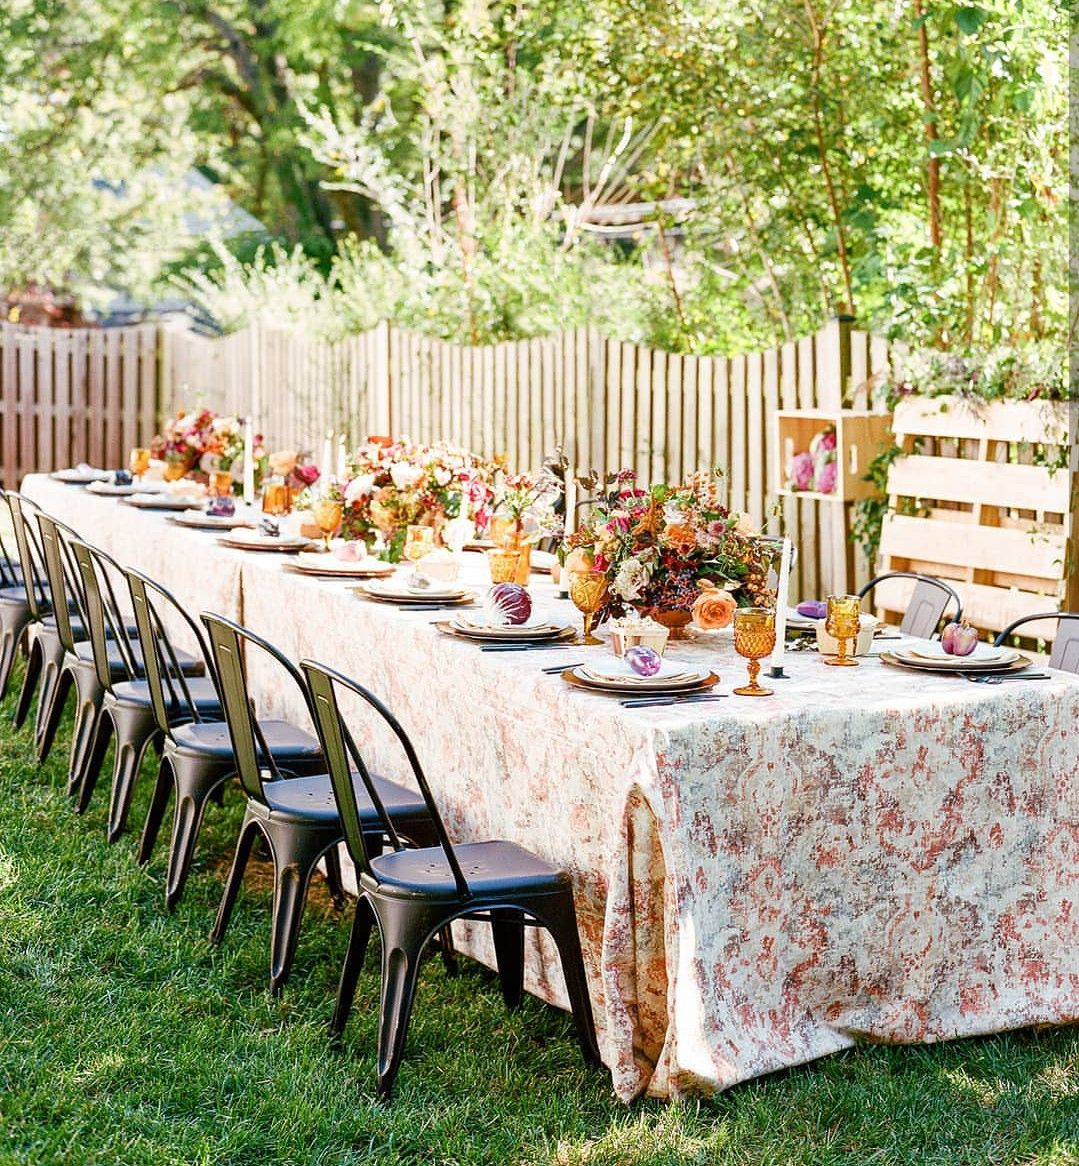 Pin By Nicole Fults On Fall Country, Rustic, Outdoor